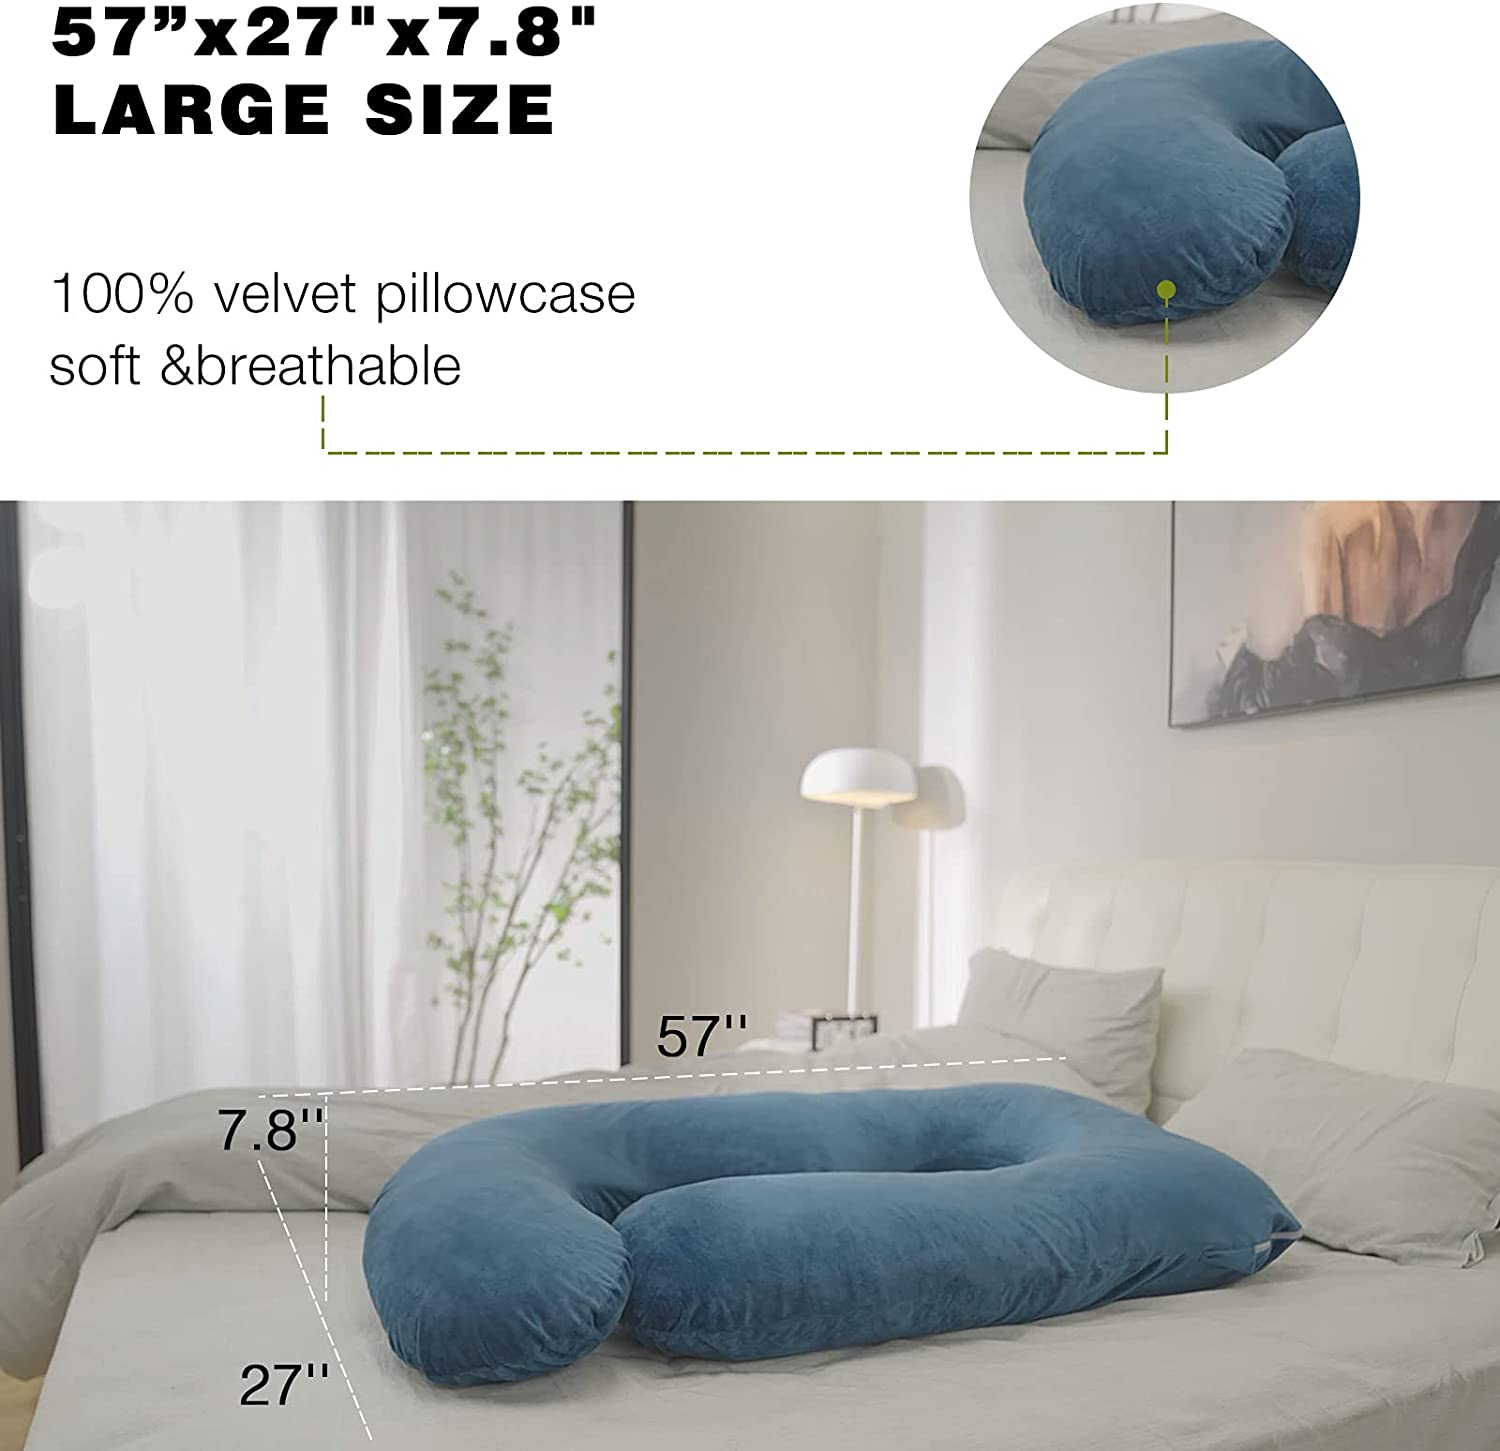 Pregnancy Pillow with 2 Velvet Cover, Rukoy Pregnancy Body Pillow for Side Sleeping, U Shaped Maternity Pillow for Belly enlarge